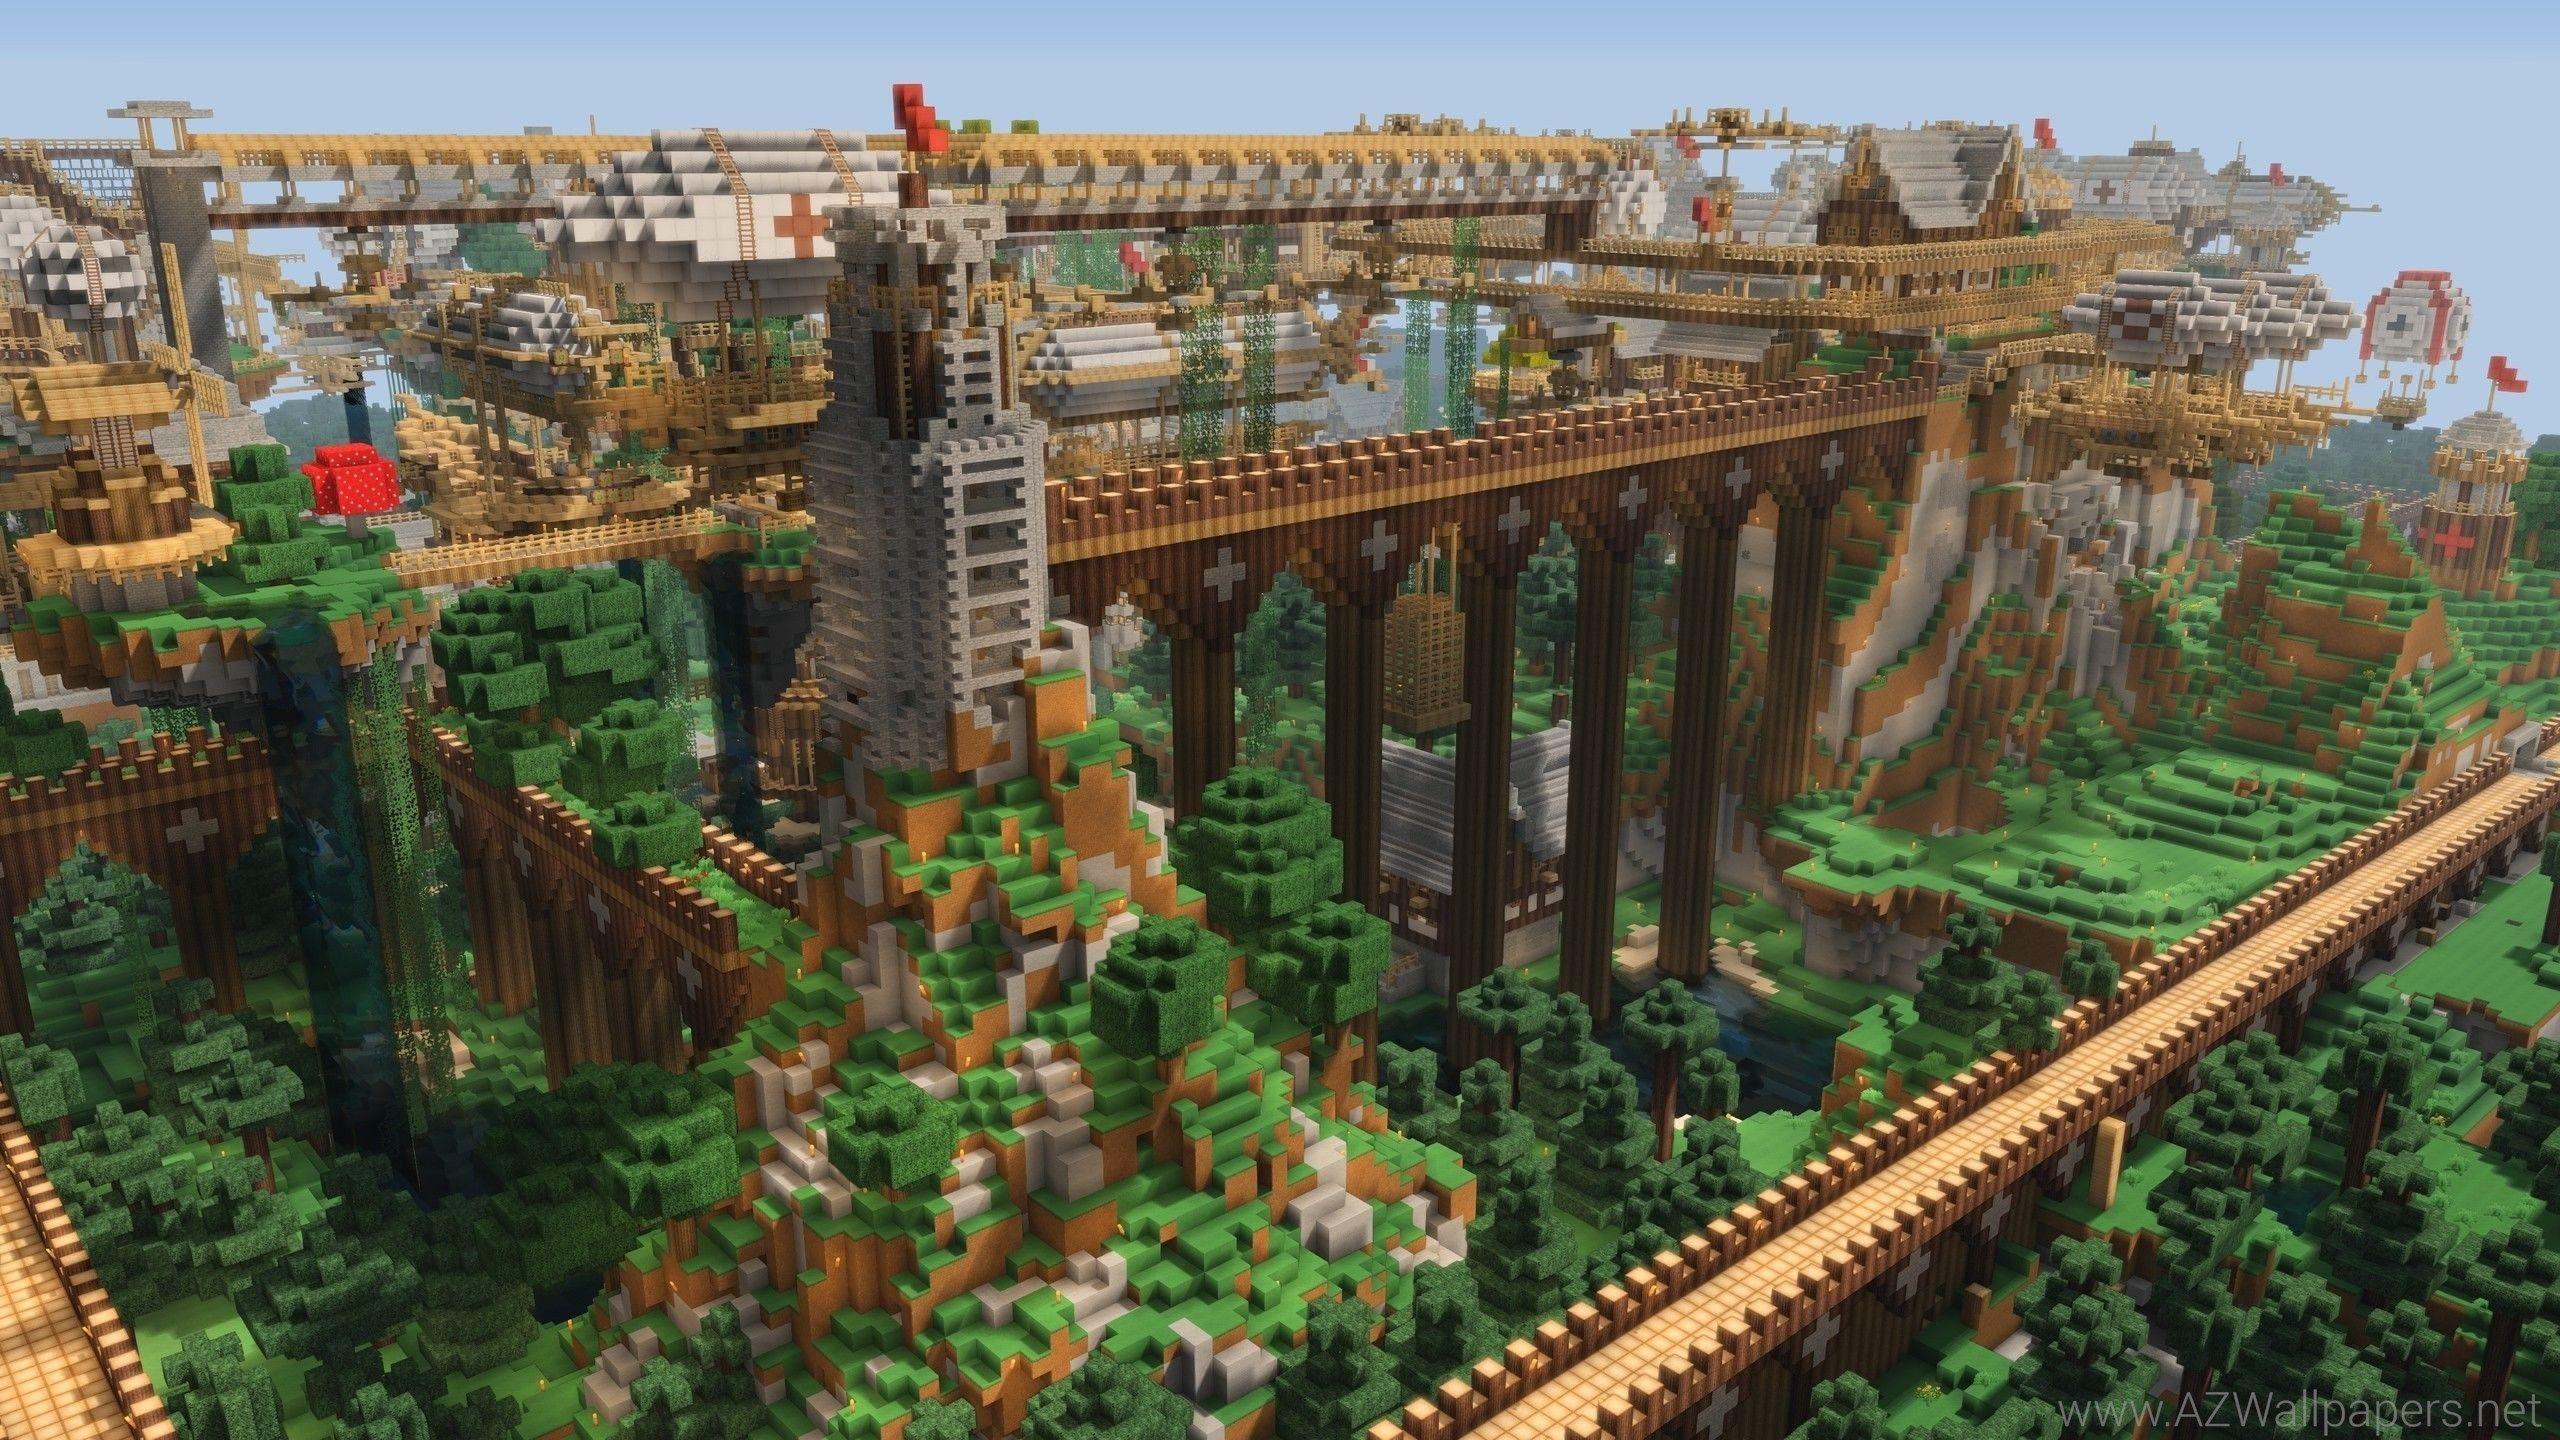 Great Wallpaper Minecraft Houses - 54b3c7b6e66fb76582e40f59f6285d6a  Perfect Image Reference_783966.jpg